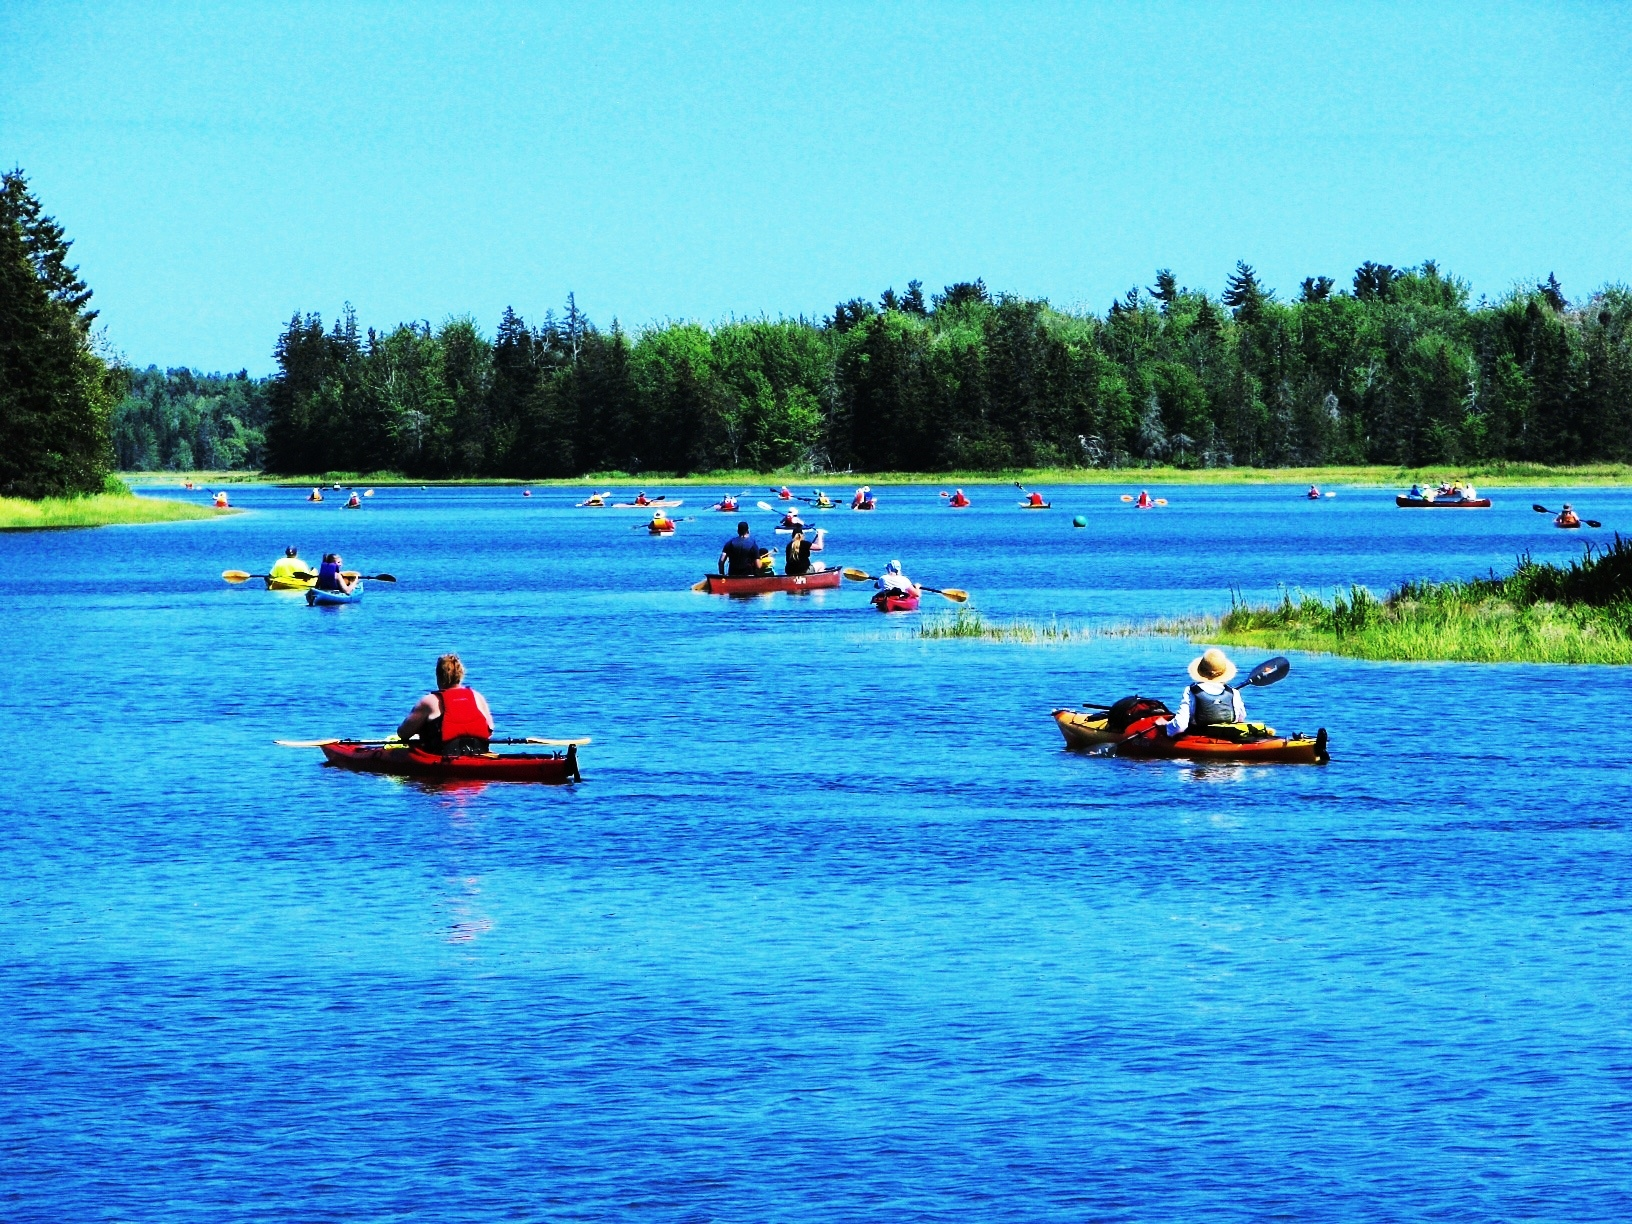 Eventually, there they all are. And a fine sight they make on our beautiful Pugwash River.